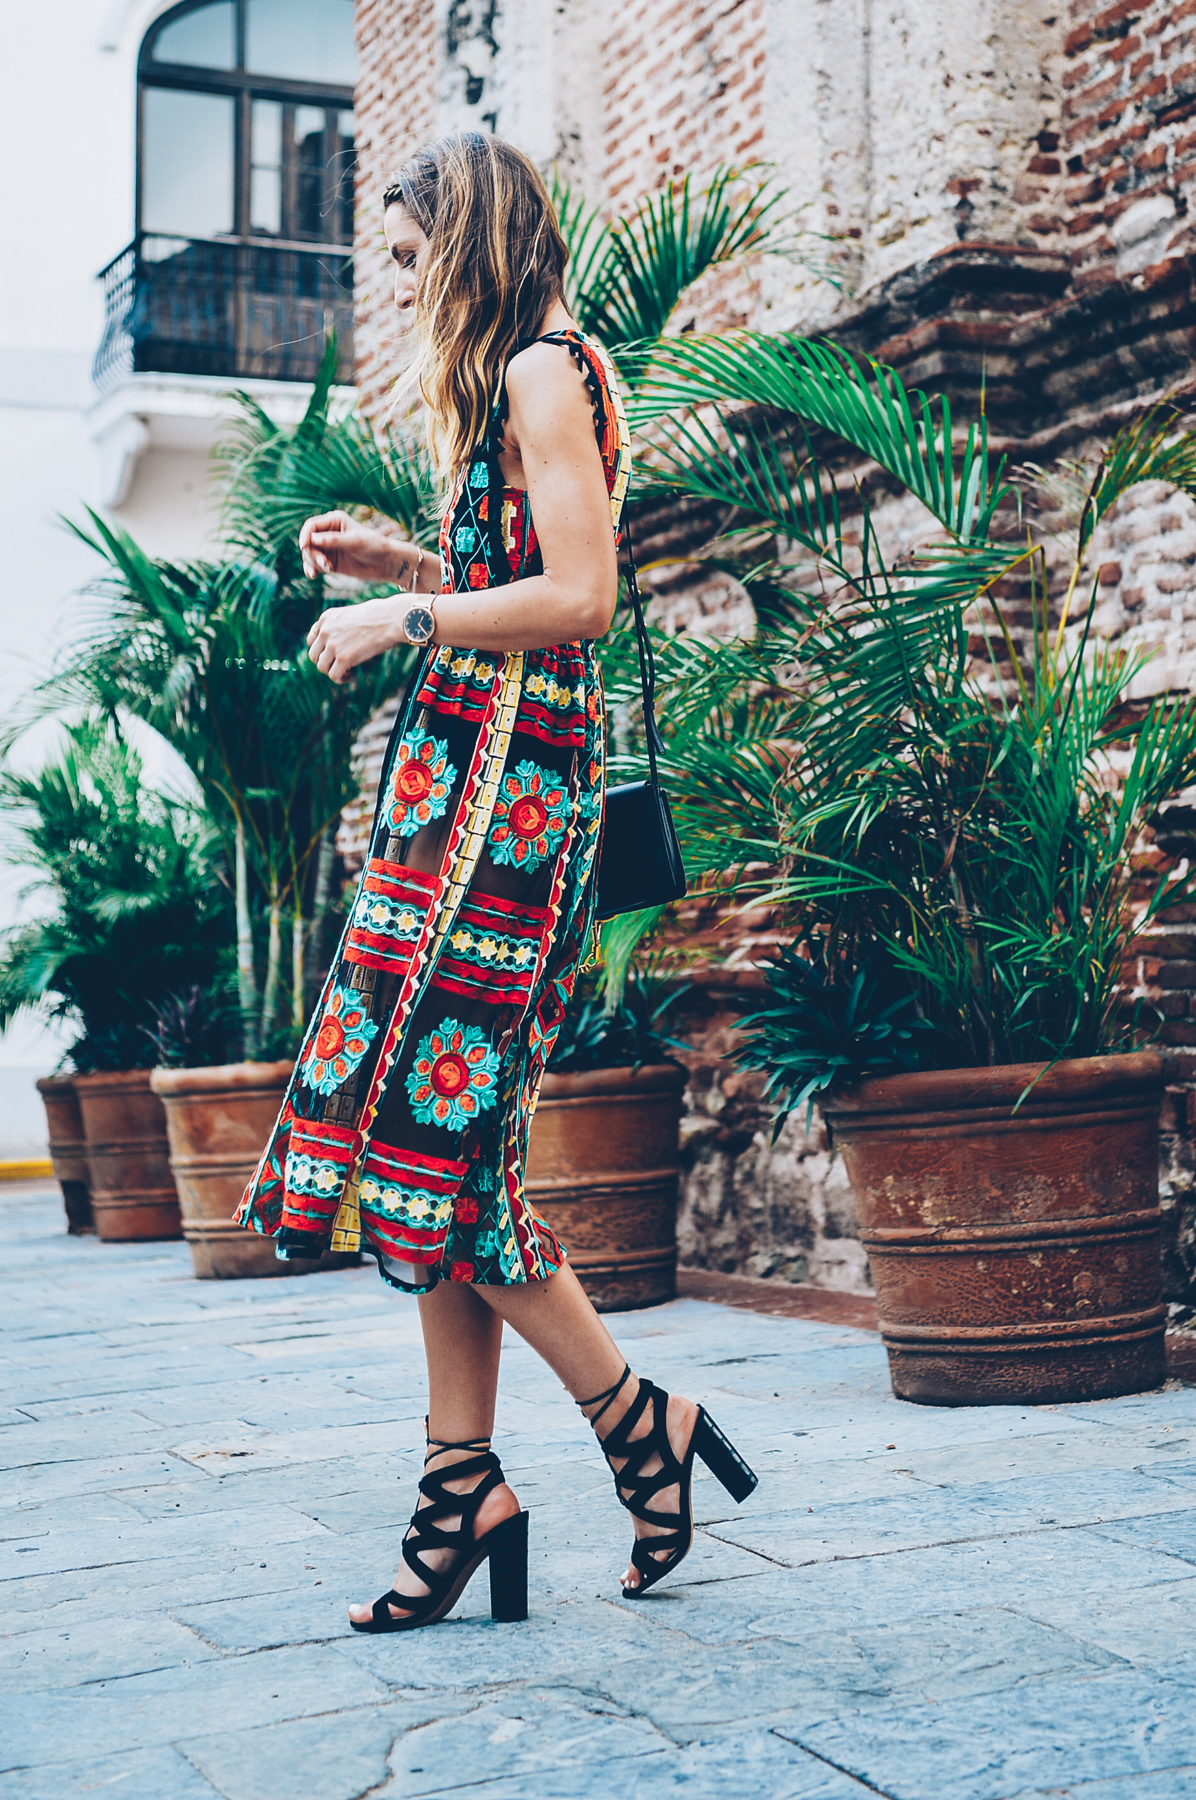 Jess Kirby wearing the Eva Franco Saskia Embroidered Dress from Anthropologie with Lace up heels in Panama City